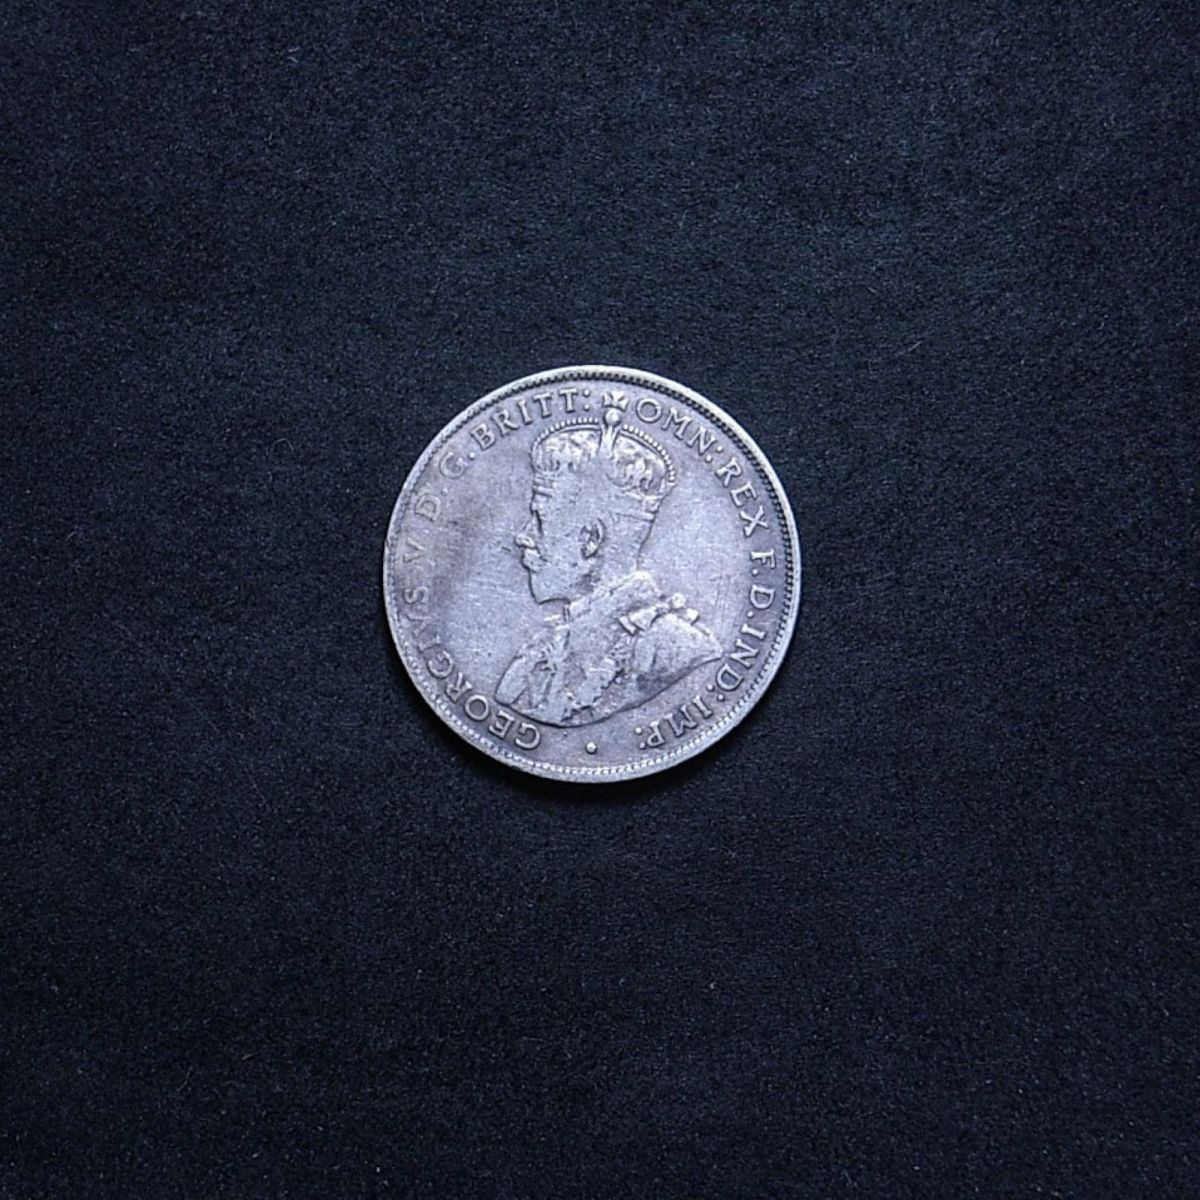 1933 florin obverse showing the coin's lustre and toning